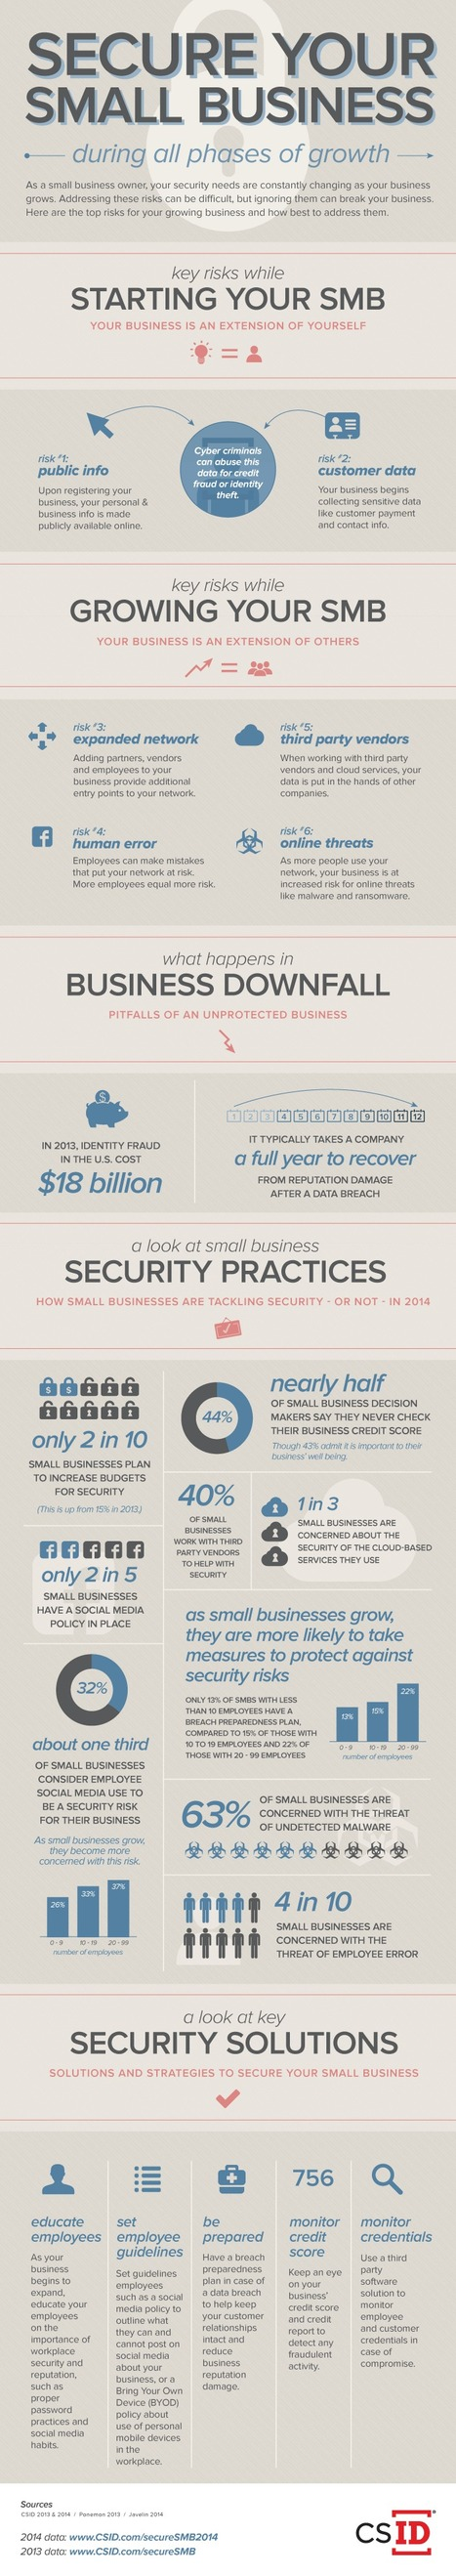 cyberSAFE Webinar Series: SMB Security for Every Phase of Growth | Infographic | FootprintDigital | Scoop.it